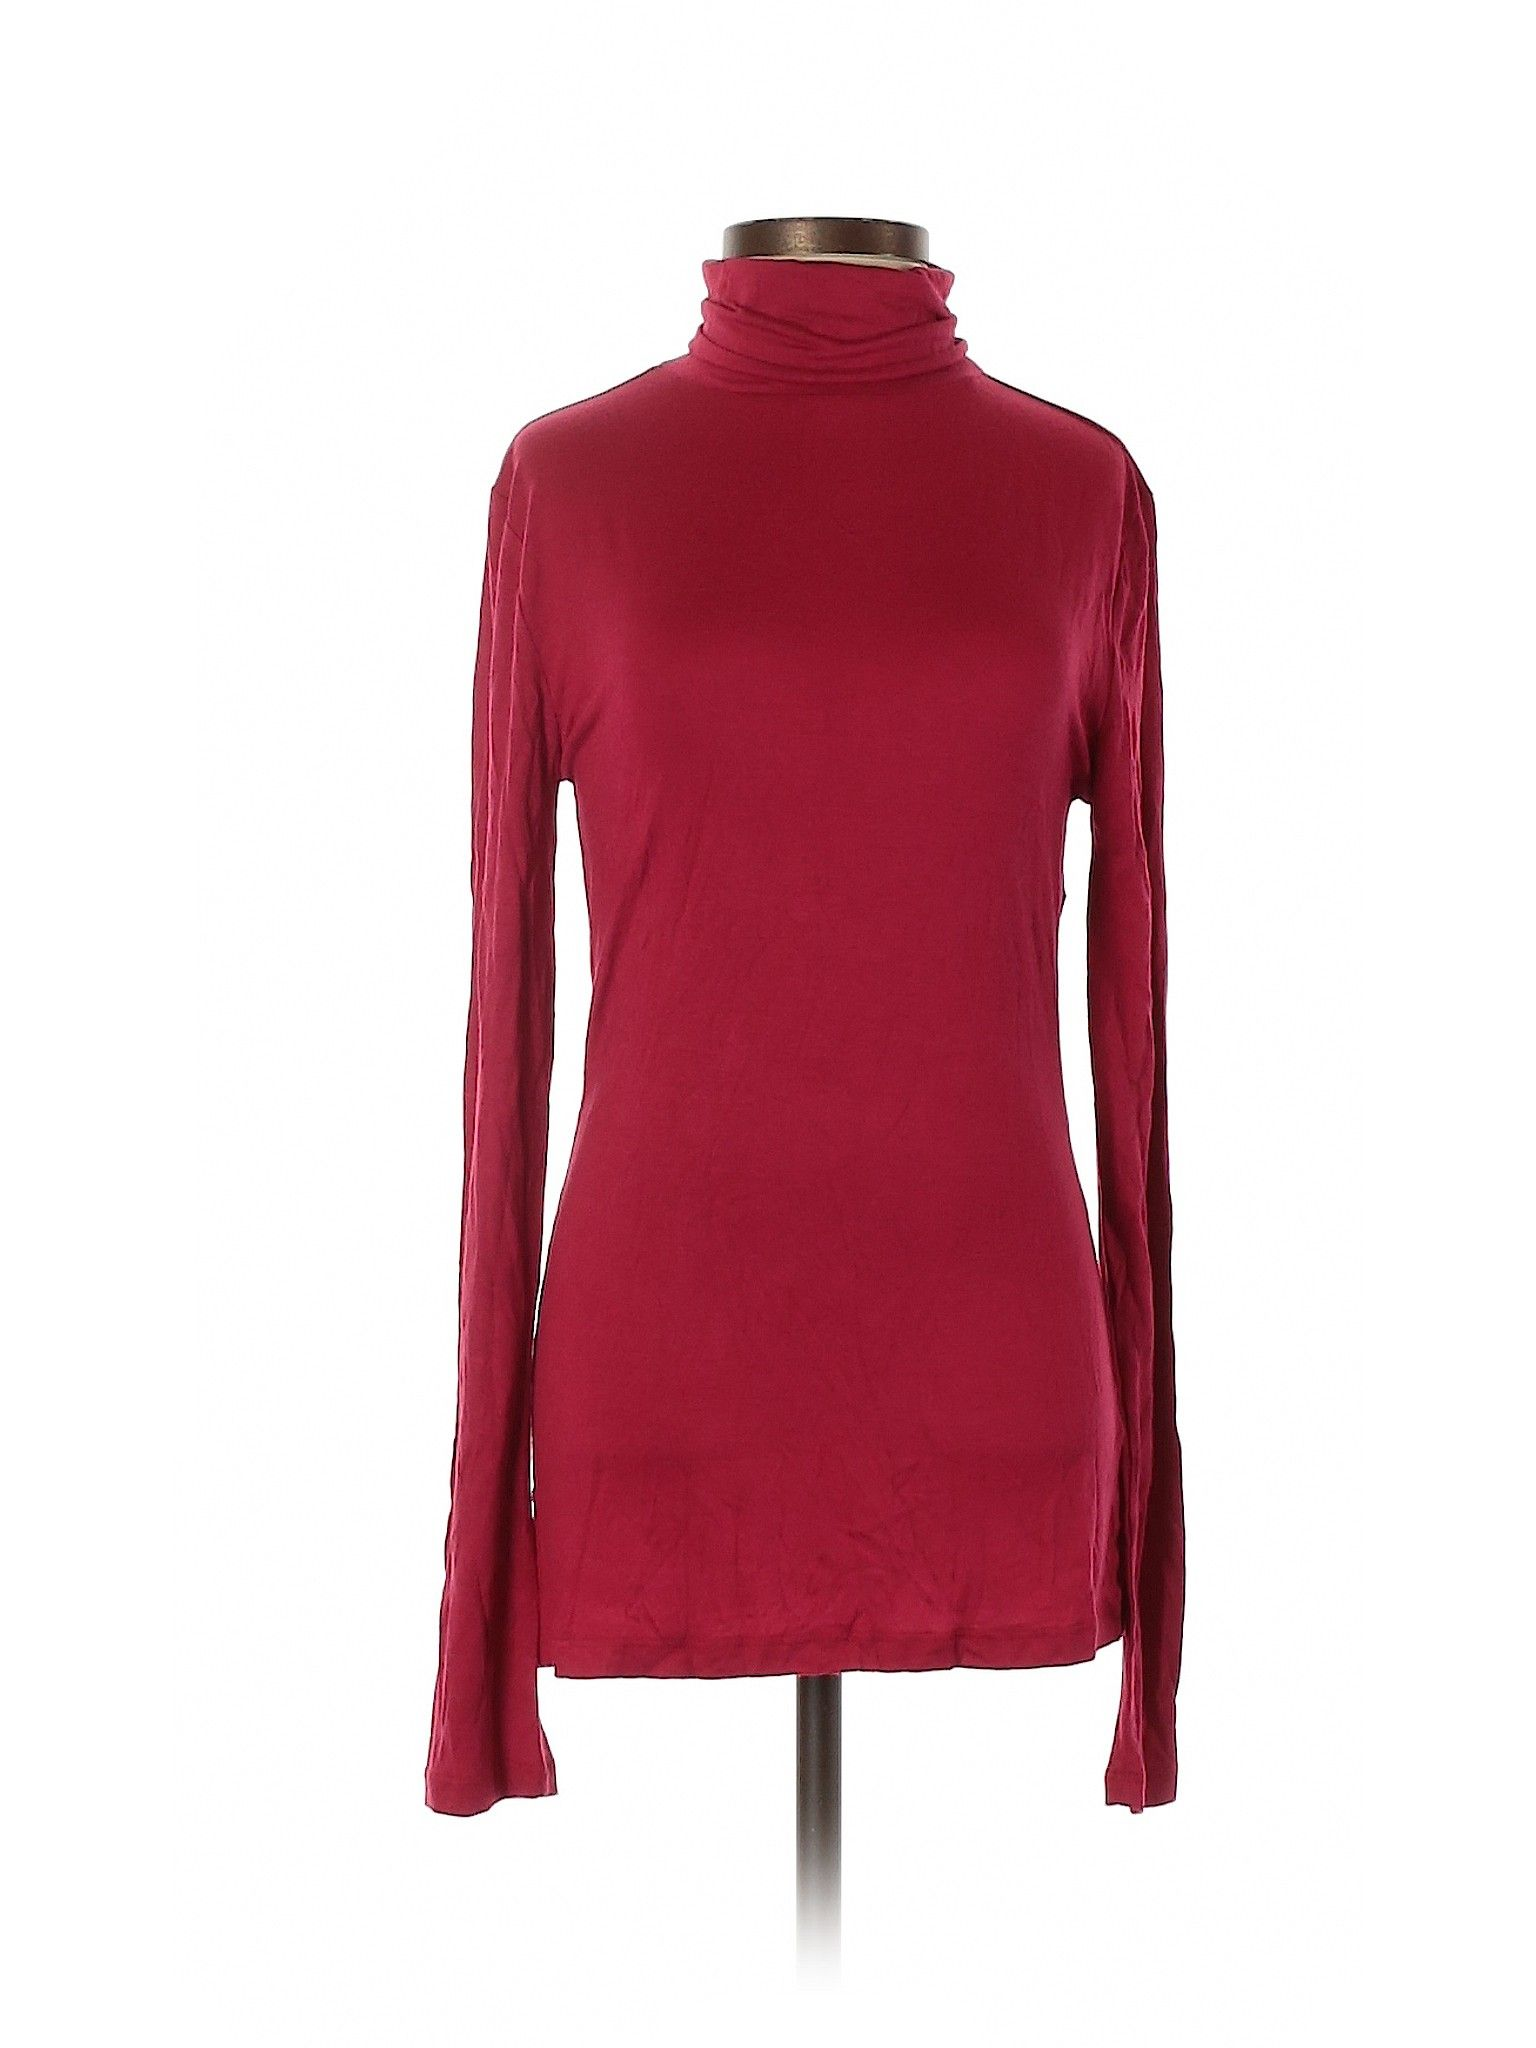 Zenana Outfitters Long Sleeve Top Red Solid Turtleneck Tops Used